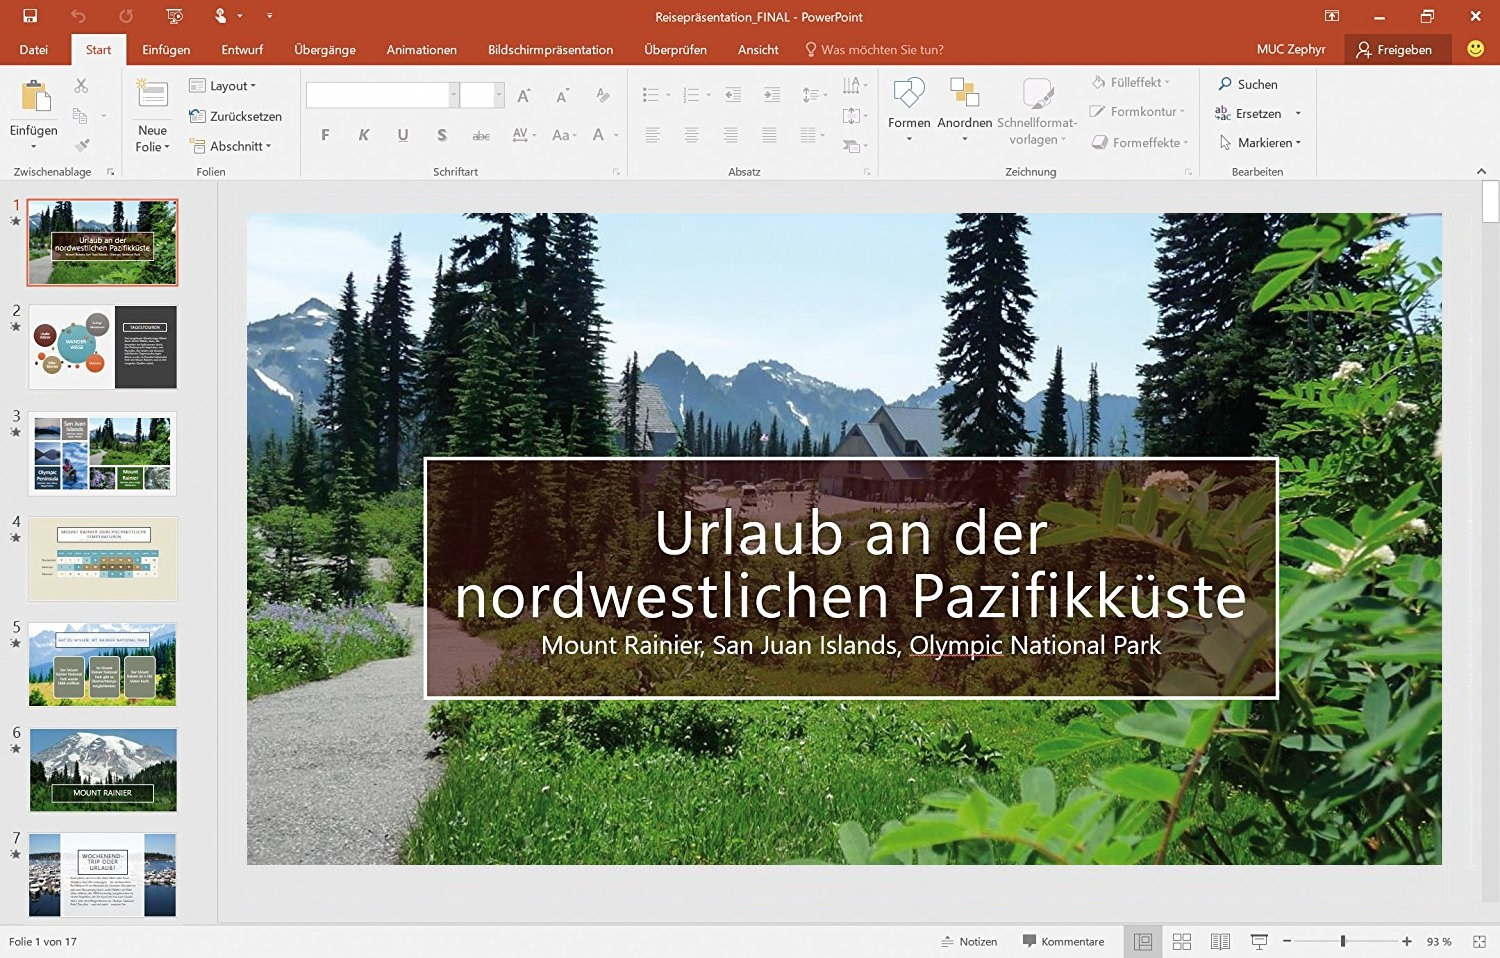 screenshot microsoft powerpoint 2016 ms office. Black Bedroom Furniture Sets. Home Design Ideas